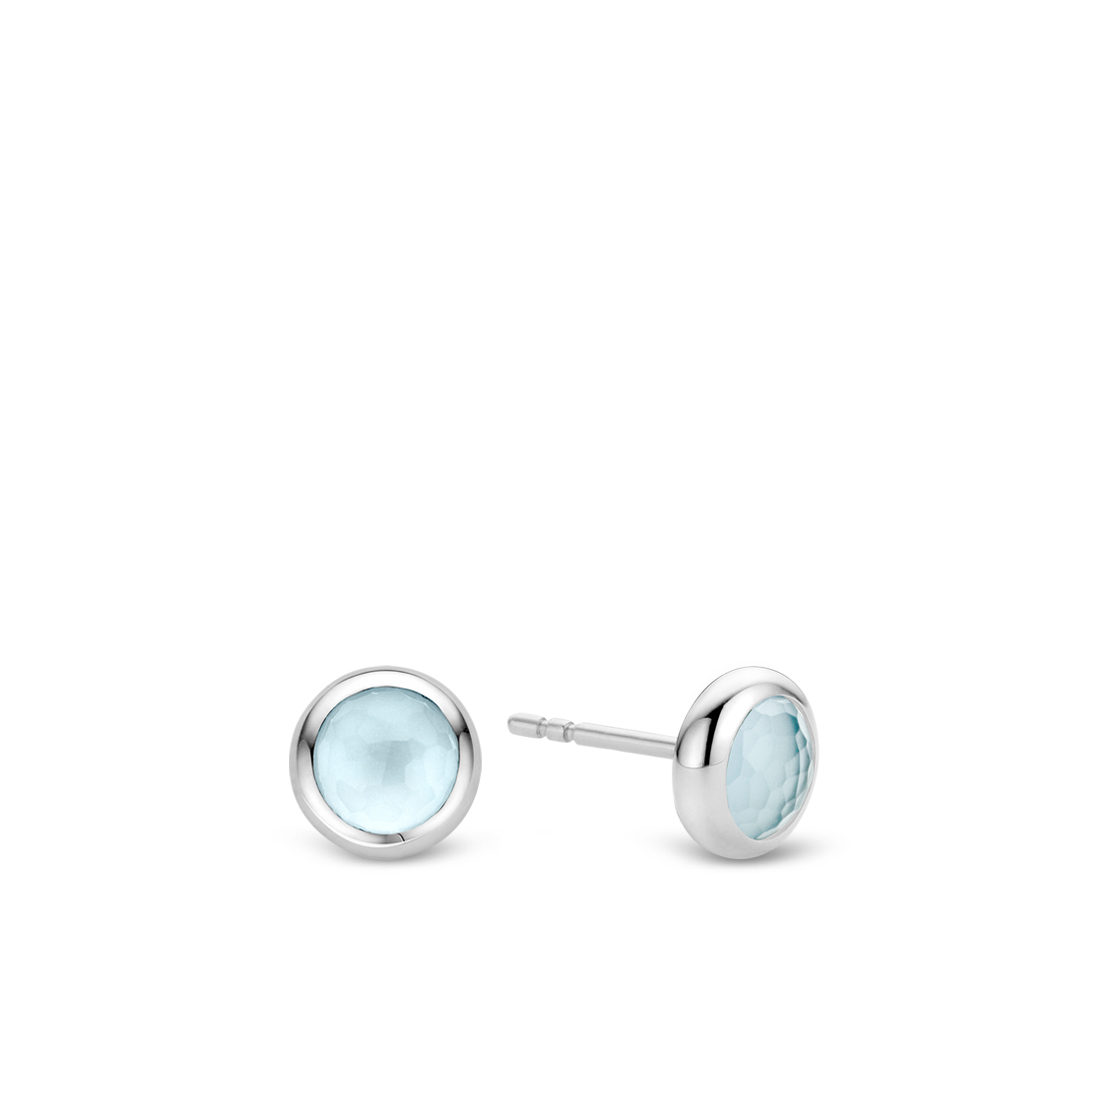 TI SENTO - Milano Earrings 7748WL